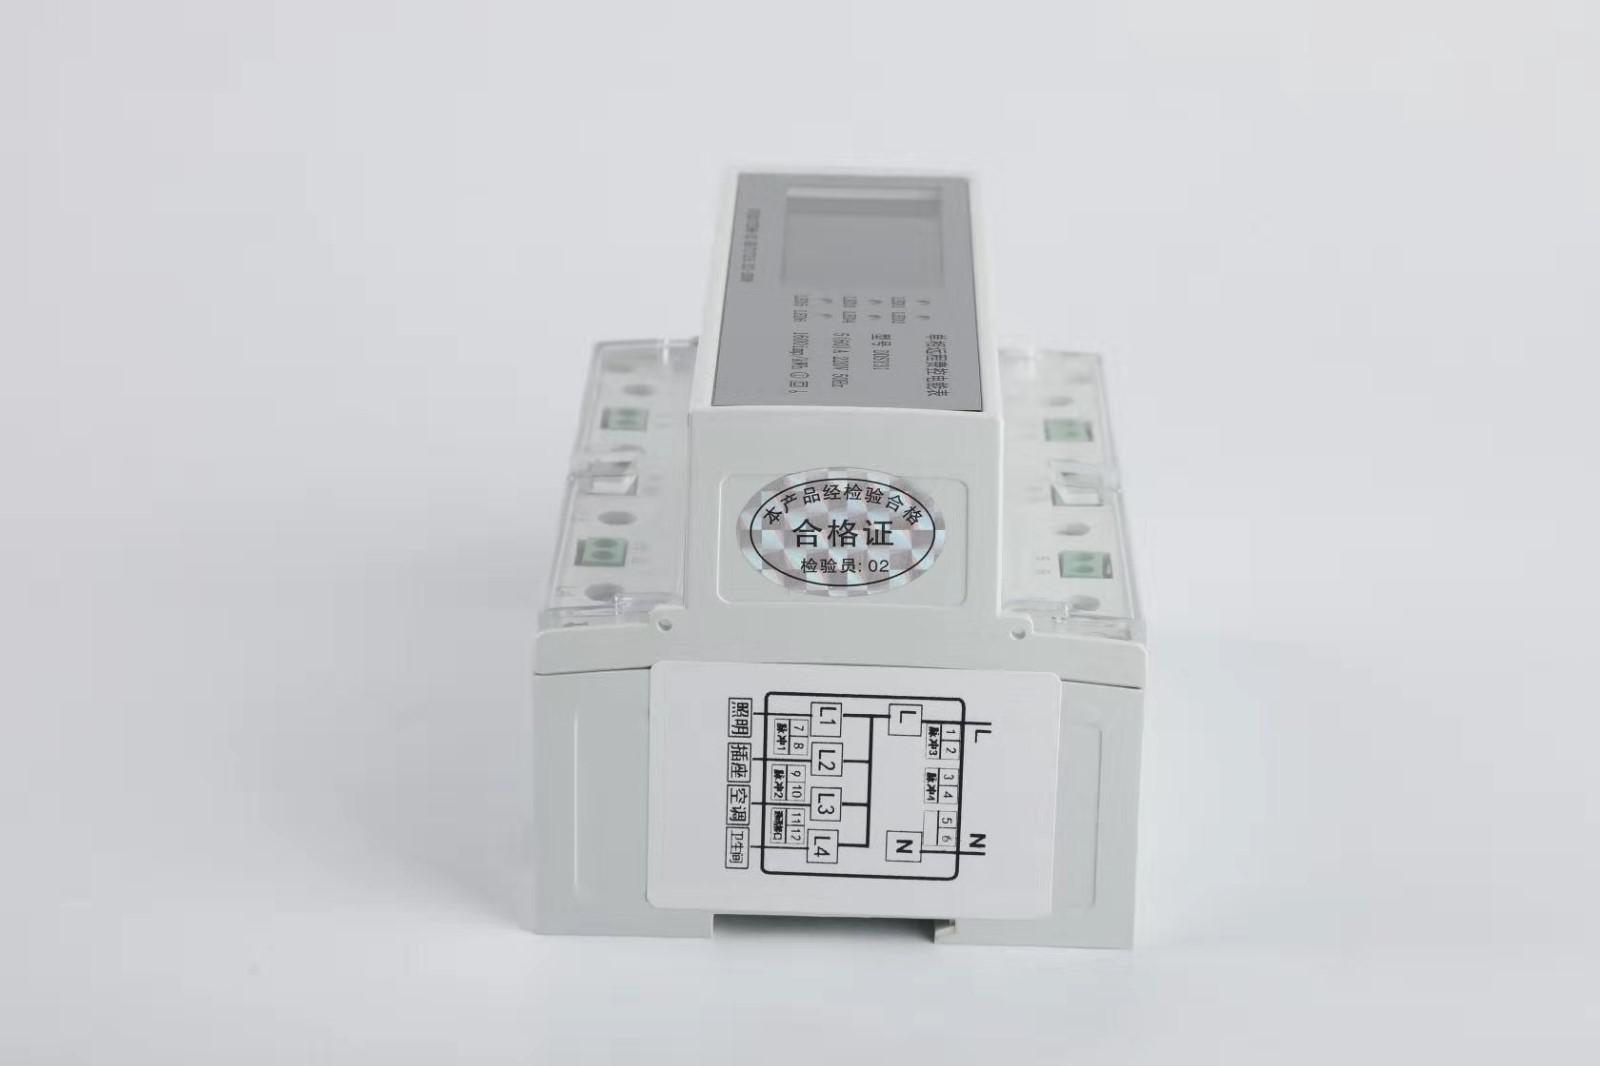 What is the unit price of the module of the 4 way control apartment in Akesu?